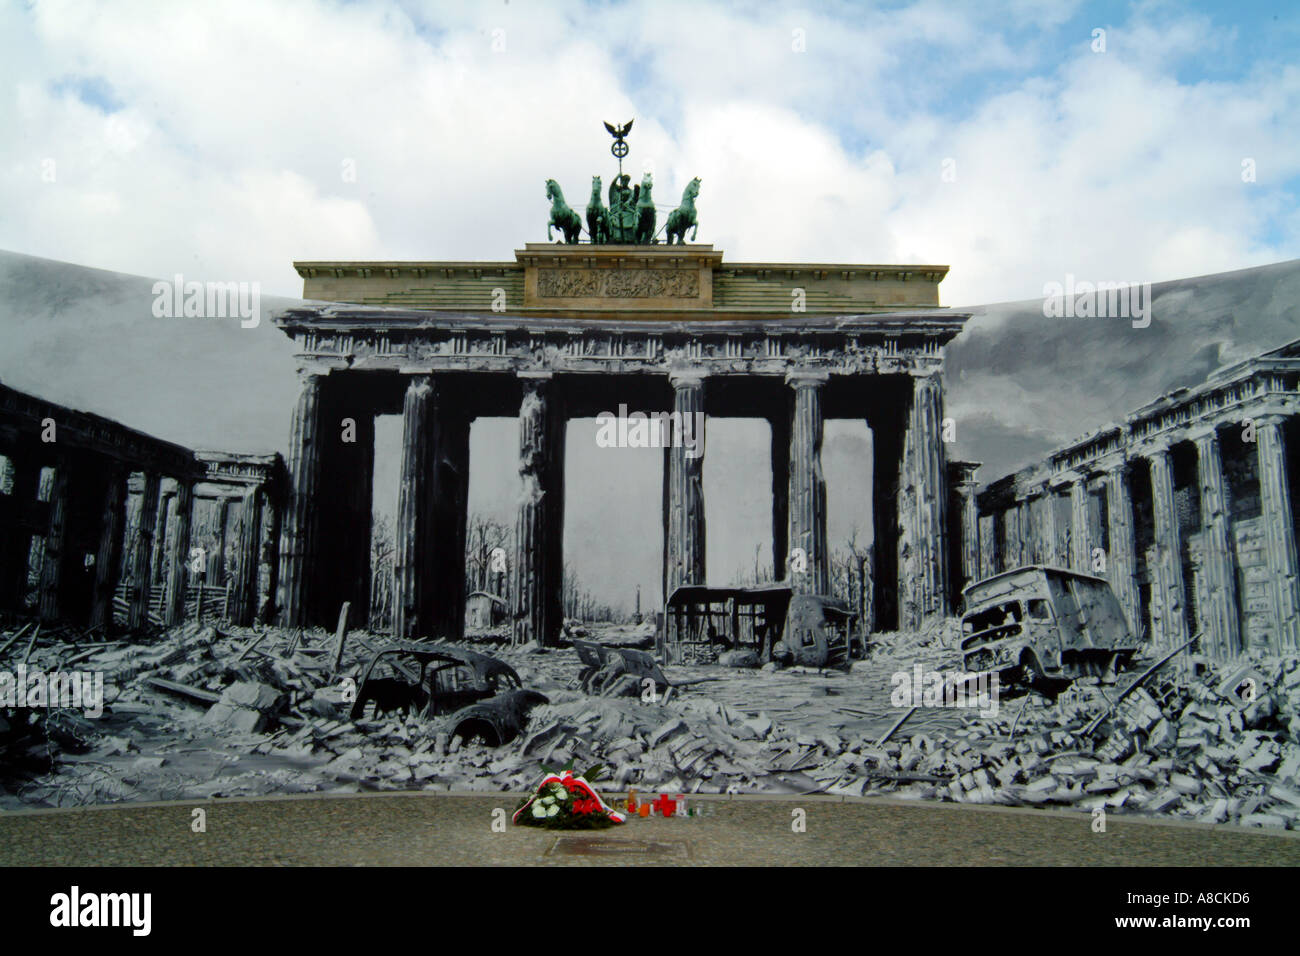 brandenburger tor brandenburg gate unter den linden berlin germany stock photo royalty free. Black Bedroom Furniture Sets. Home Design Ideas